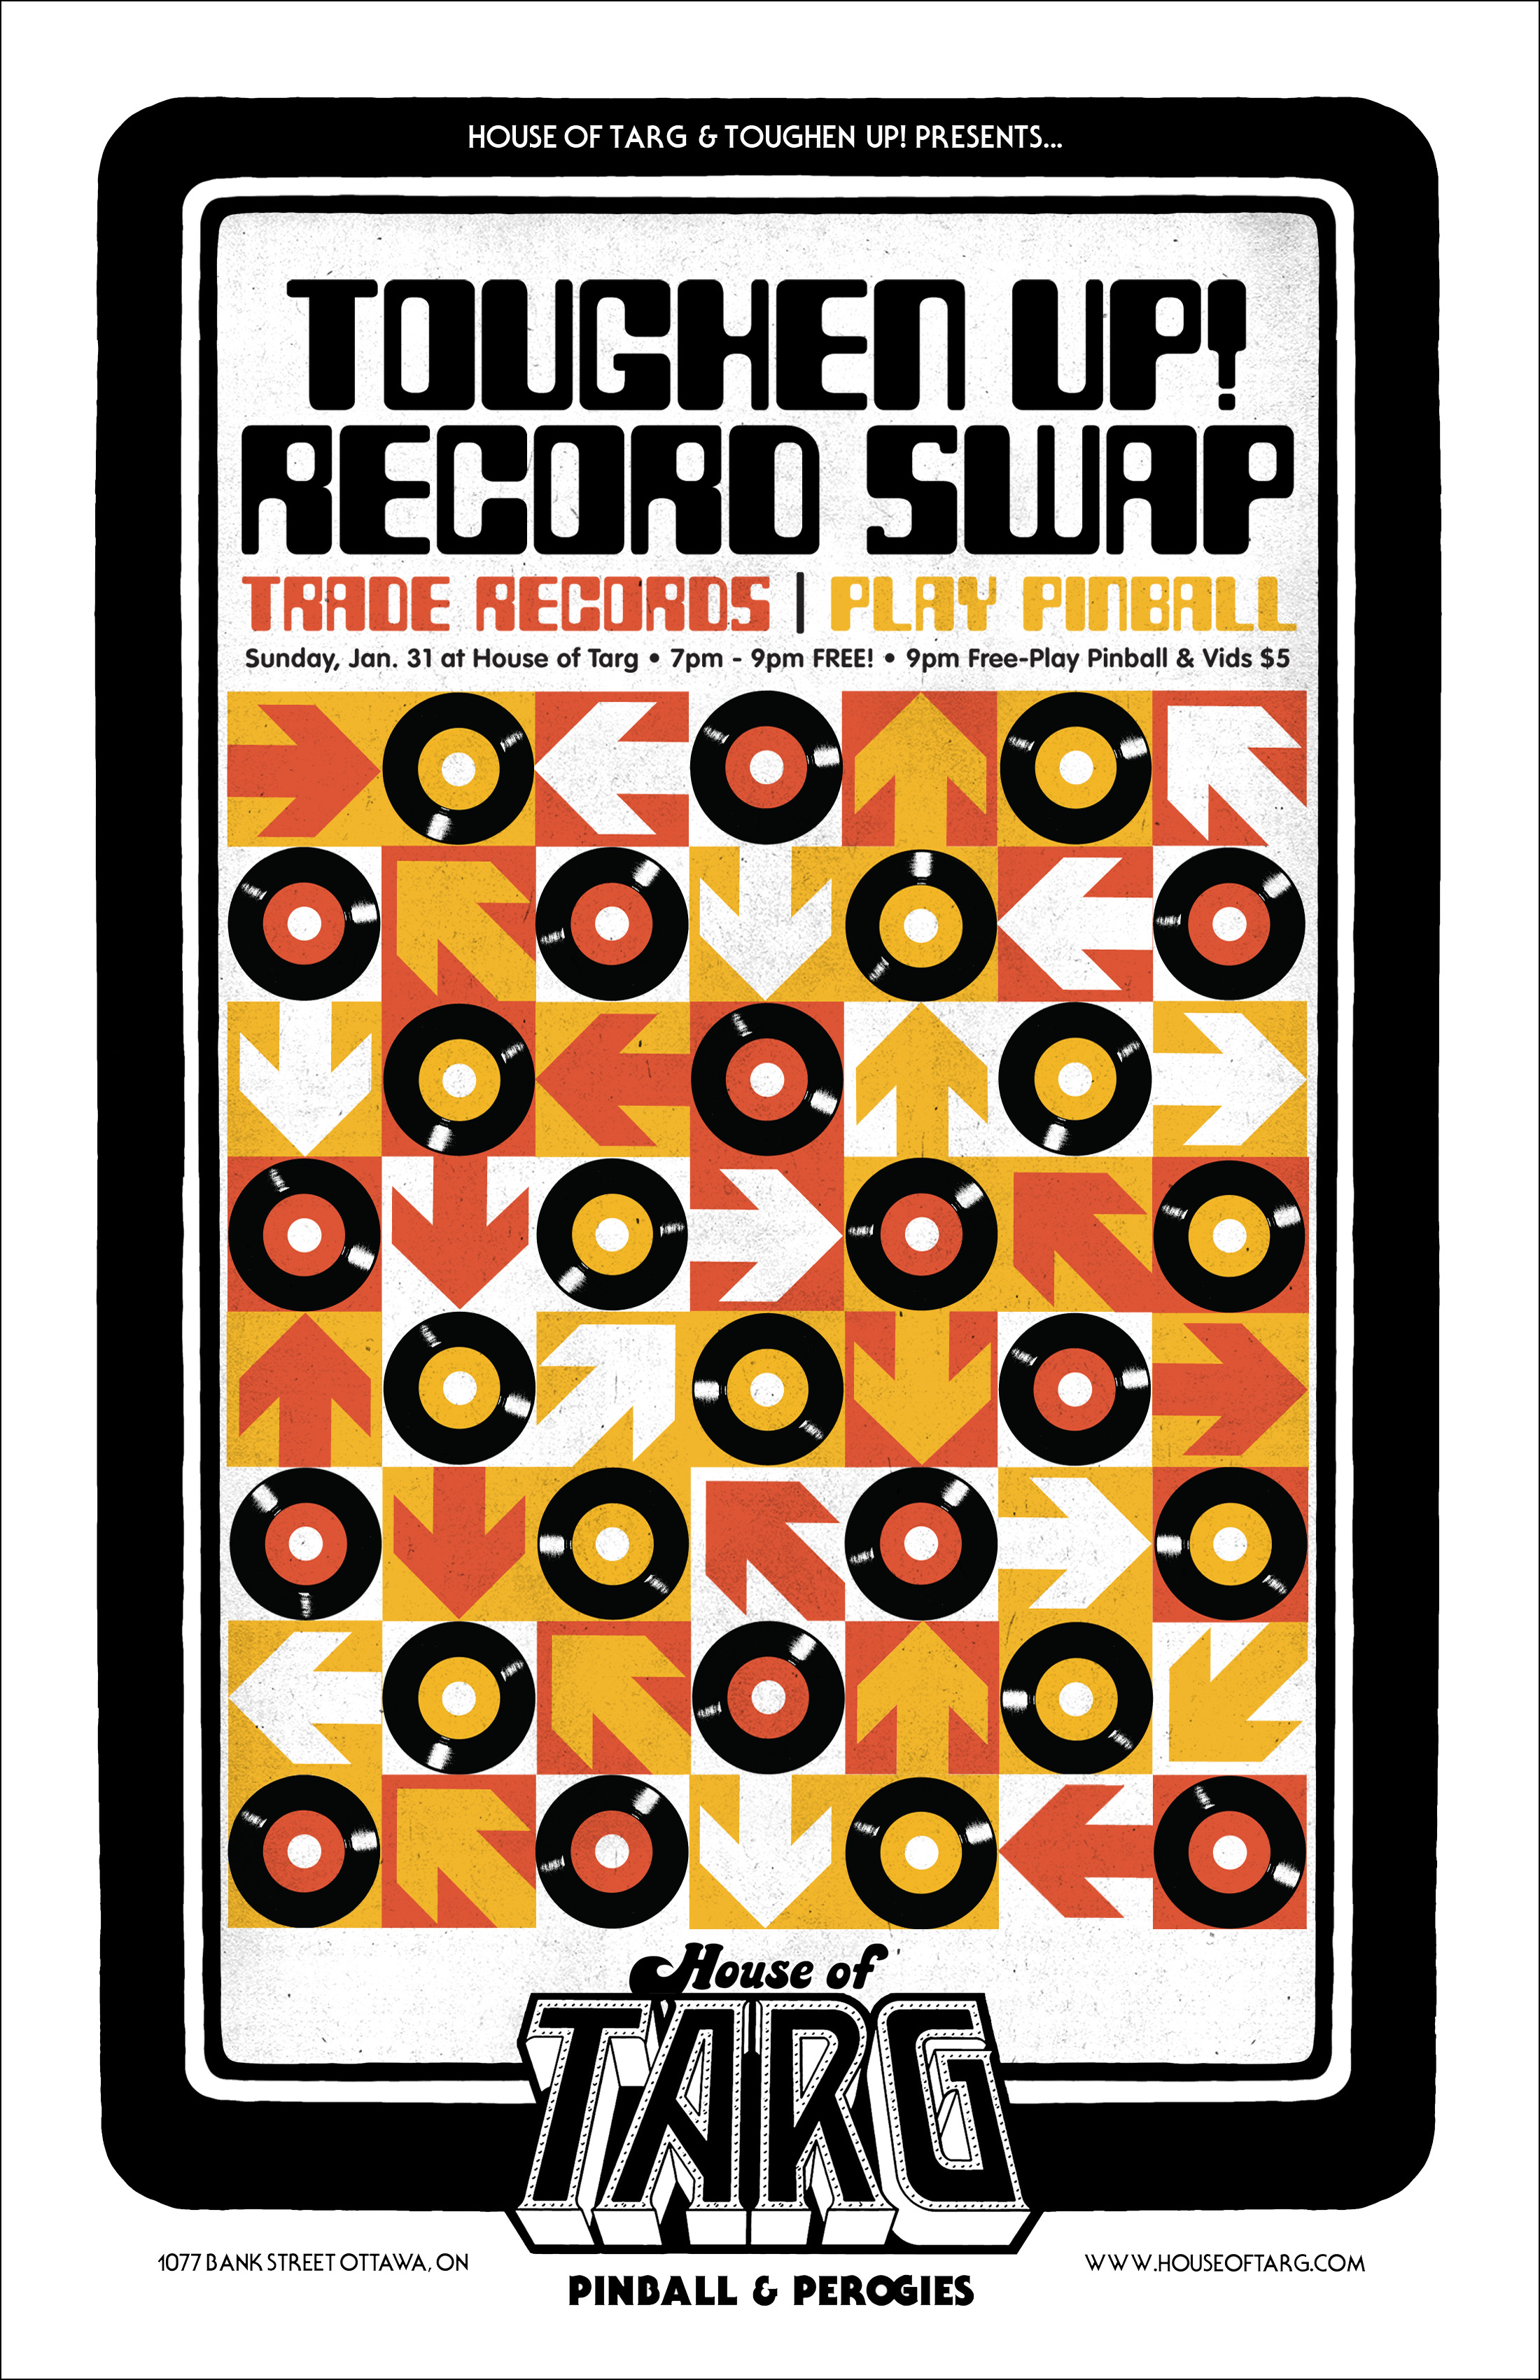 """TOUGHEN UP! RECORD SWAP   Sun Jan 31 7pm - 9pm FREE   Trade, sell or buy platters from any genre, time period and size [12"""", 10"""", 7""""]. Everyone Welcome!  GET THE STRAIGHT SKINNY HERE"""